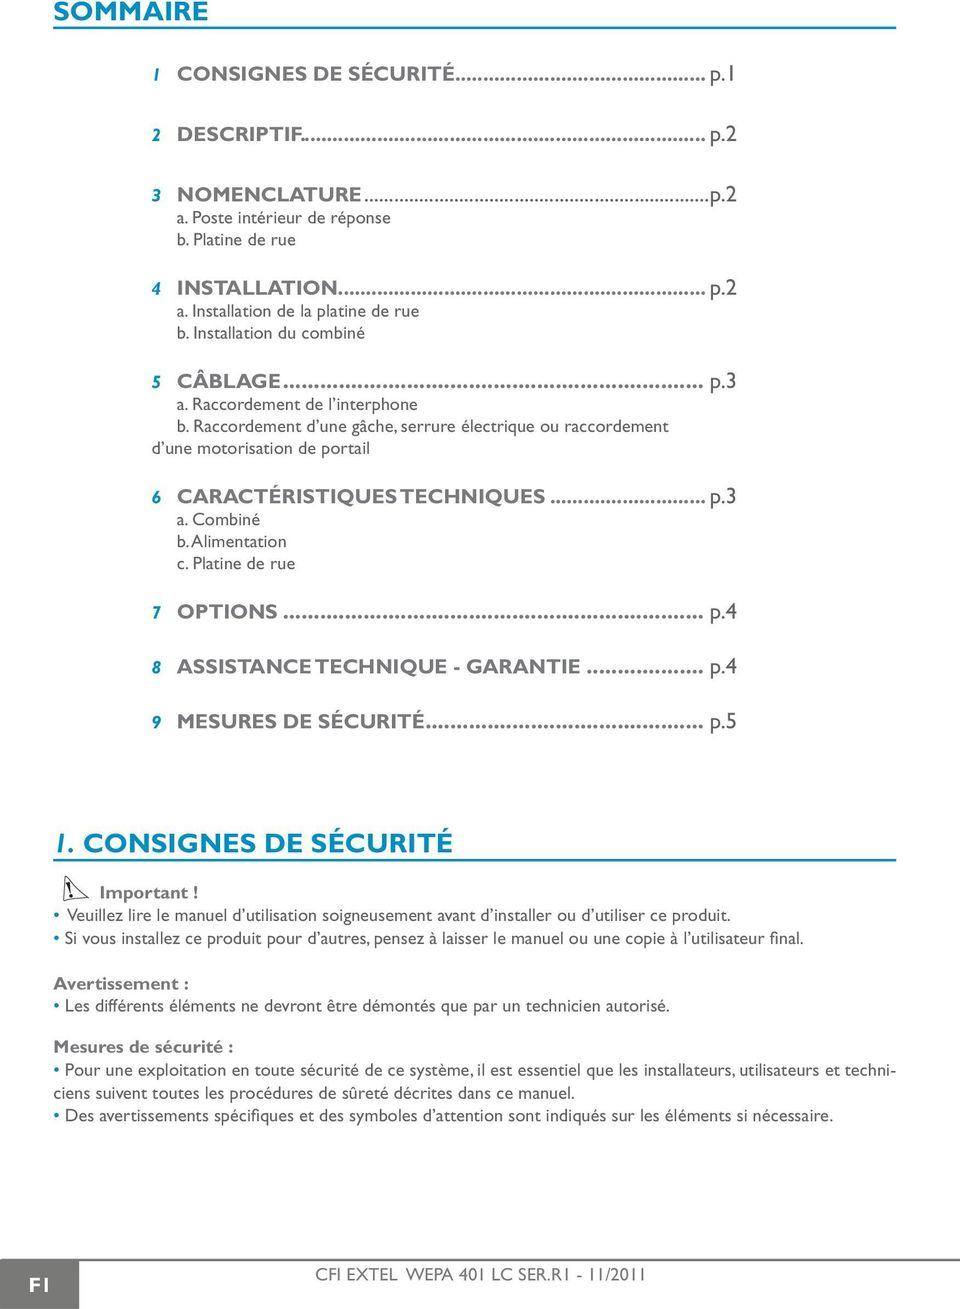 Alimentation c. Platine de rue 7 OPTIONS... p.4 8 ASSISTANCE TECHNIQUE - GARANTIE... p.4 9 MESURES DE SÉCURITÉ... p.5 1. CONSIGNES DE SÉCURITÉ Important!